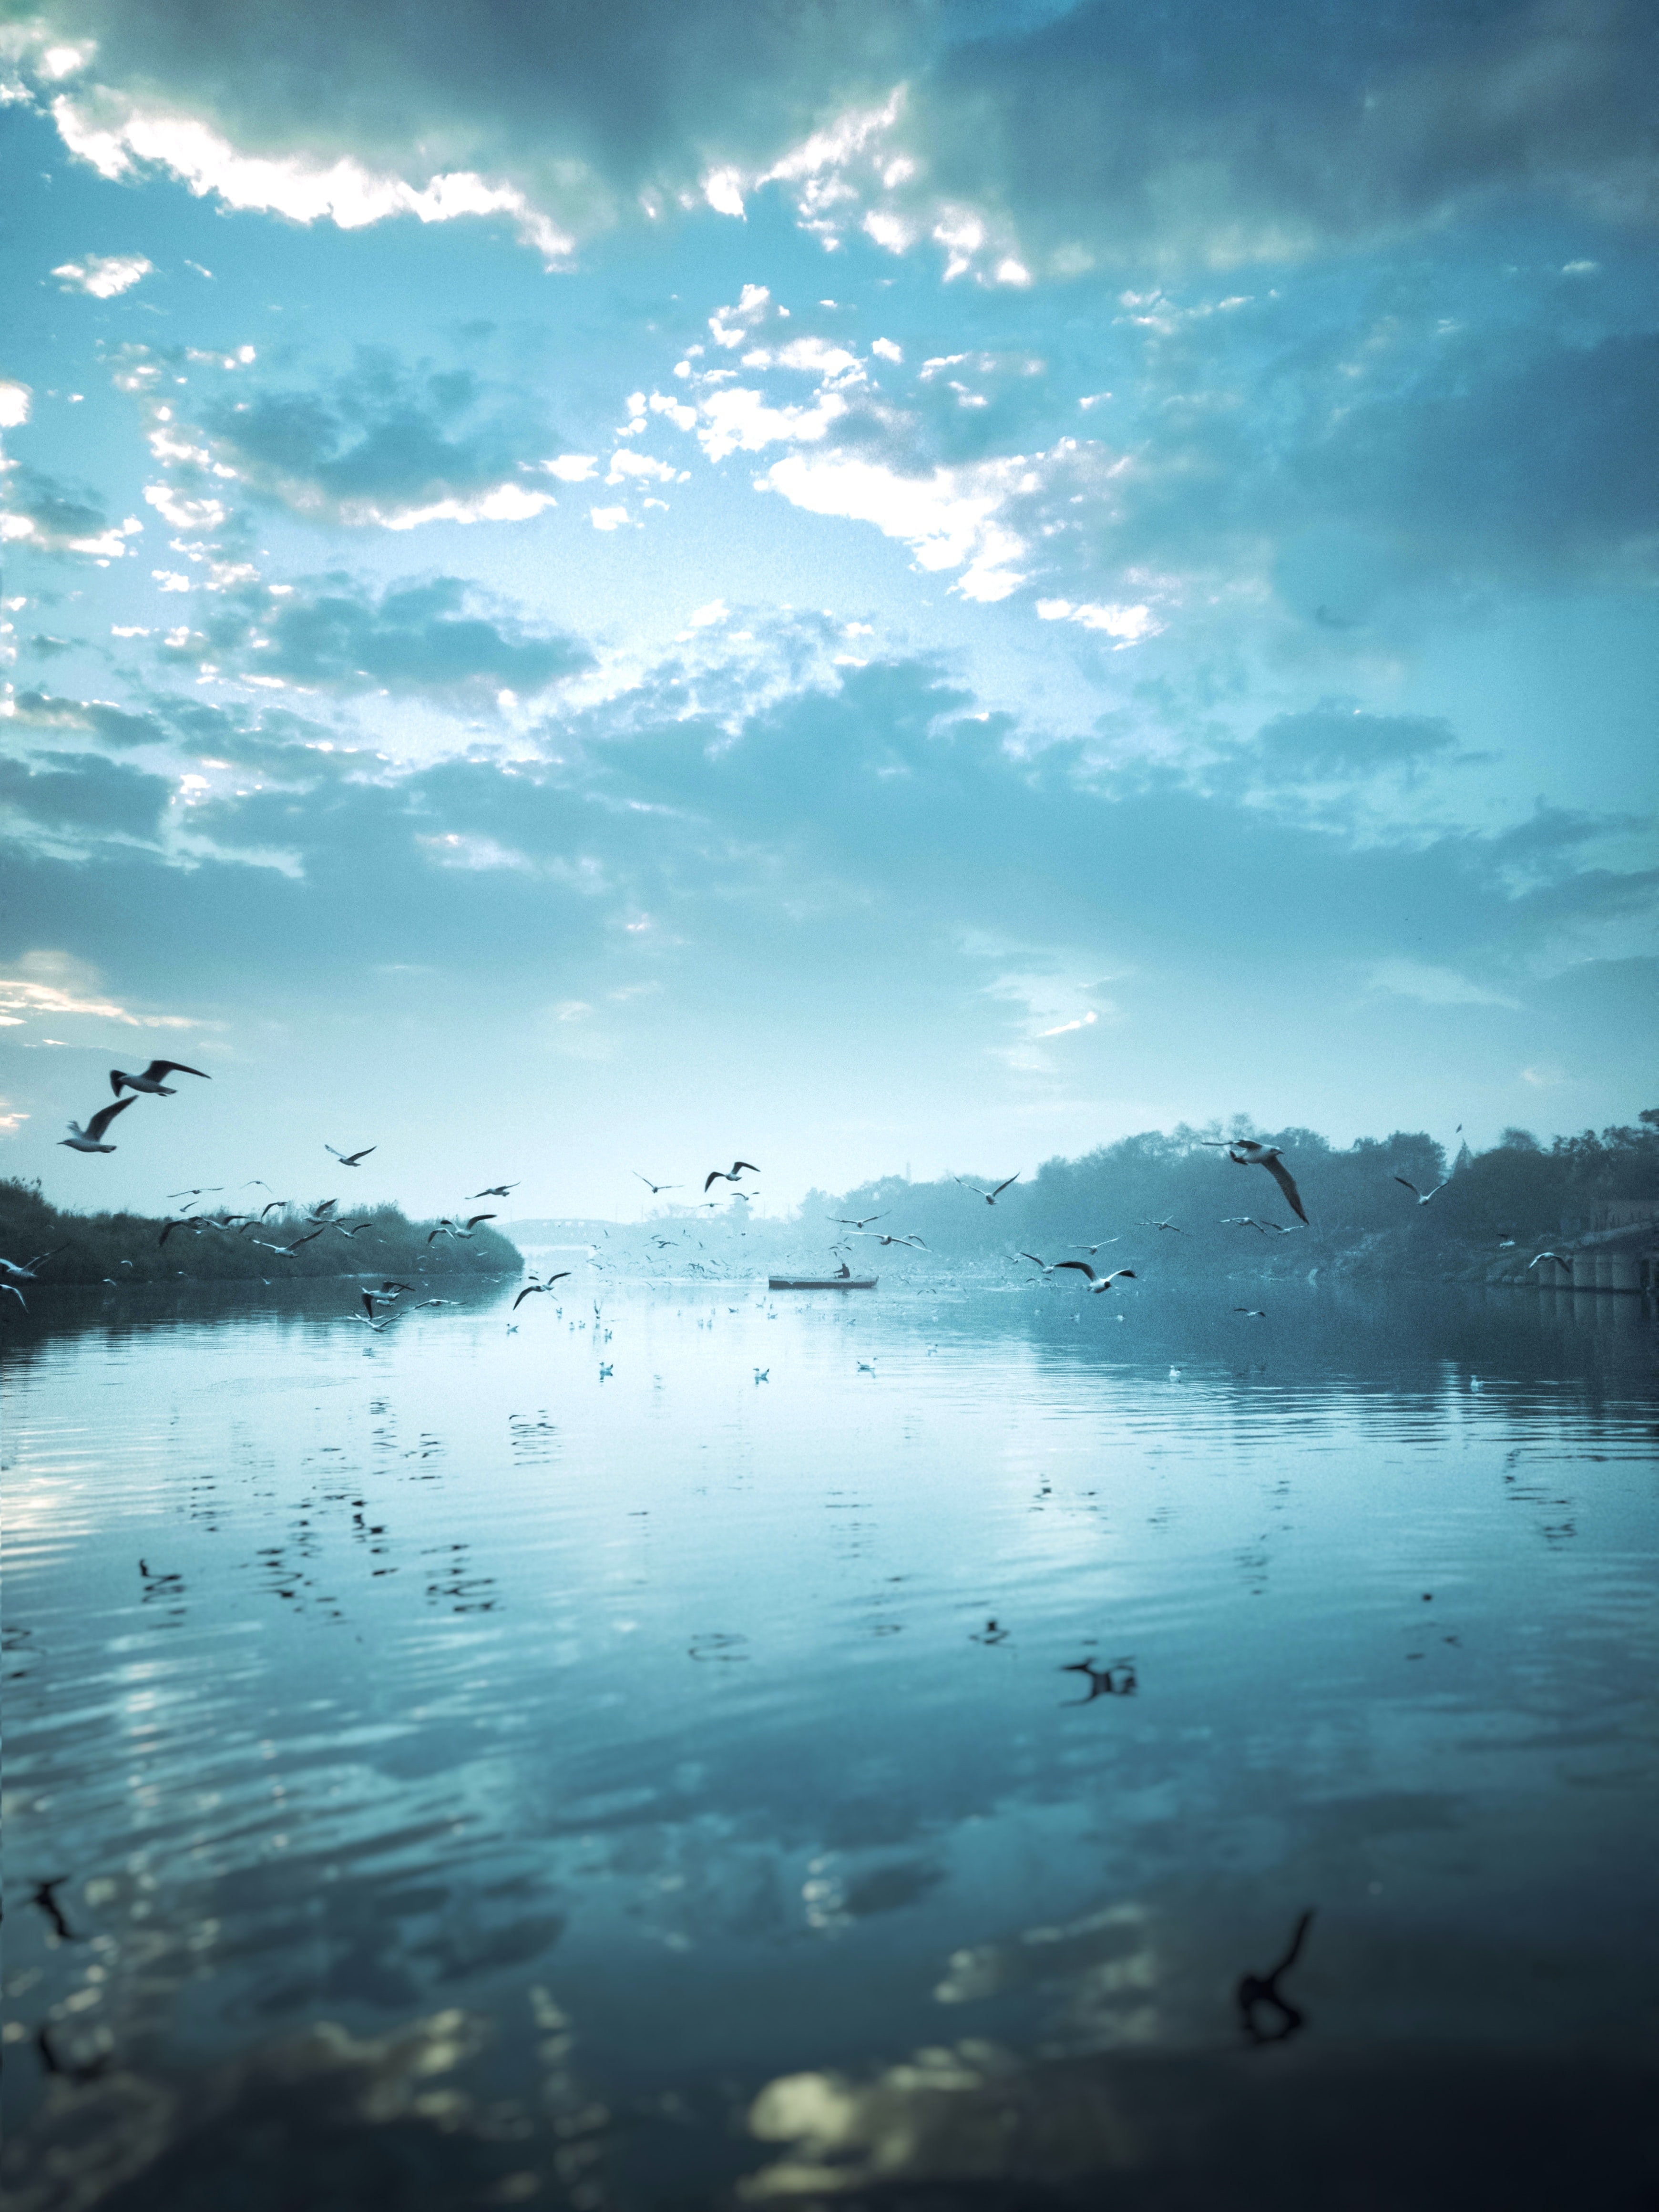 birds flying near body of water under cloudy sky during daytime